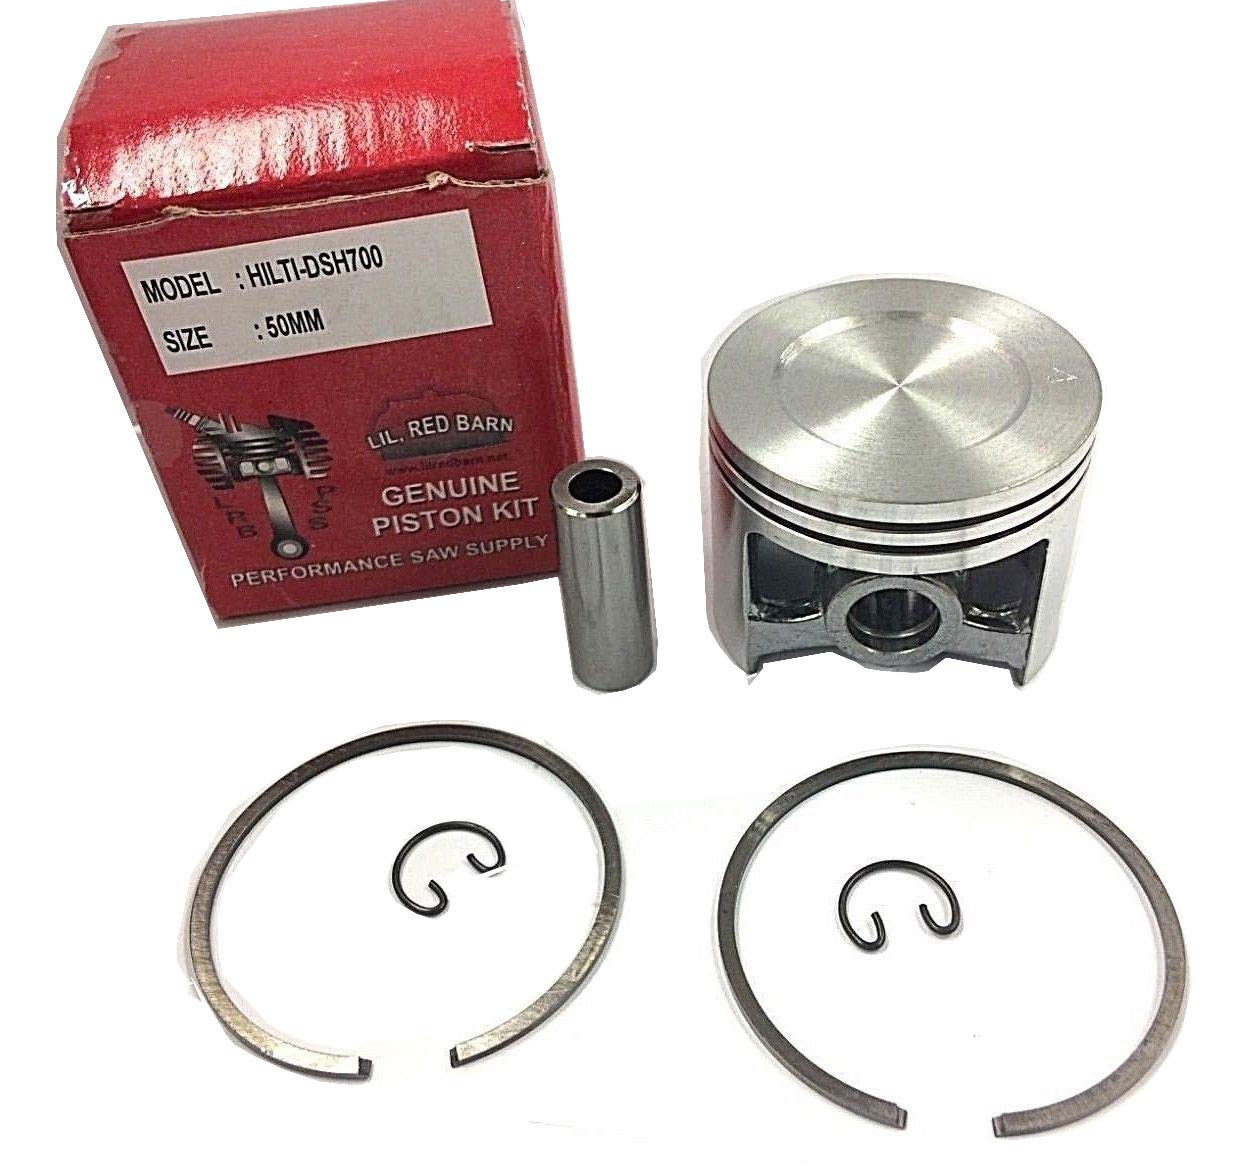 Hilti DCS 700,DSH 700X Concrete Cut Off Saw Piston, 50MM Kit, Replaces Hilti Part # 412238 2 DAY STANDARD SHIPPING TO ALL 50 STATES! by Lil Red Barn